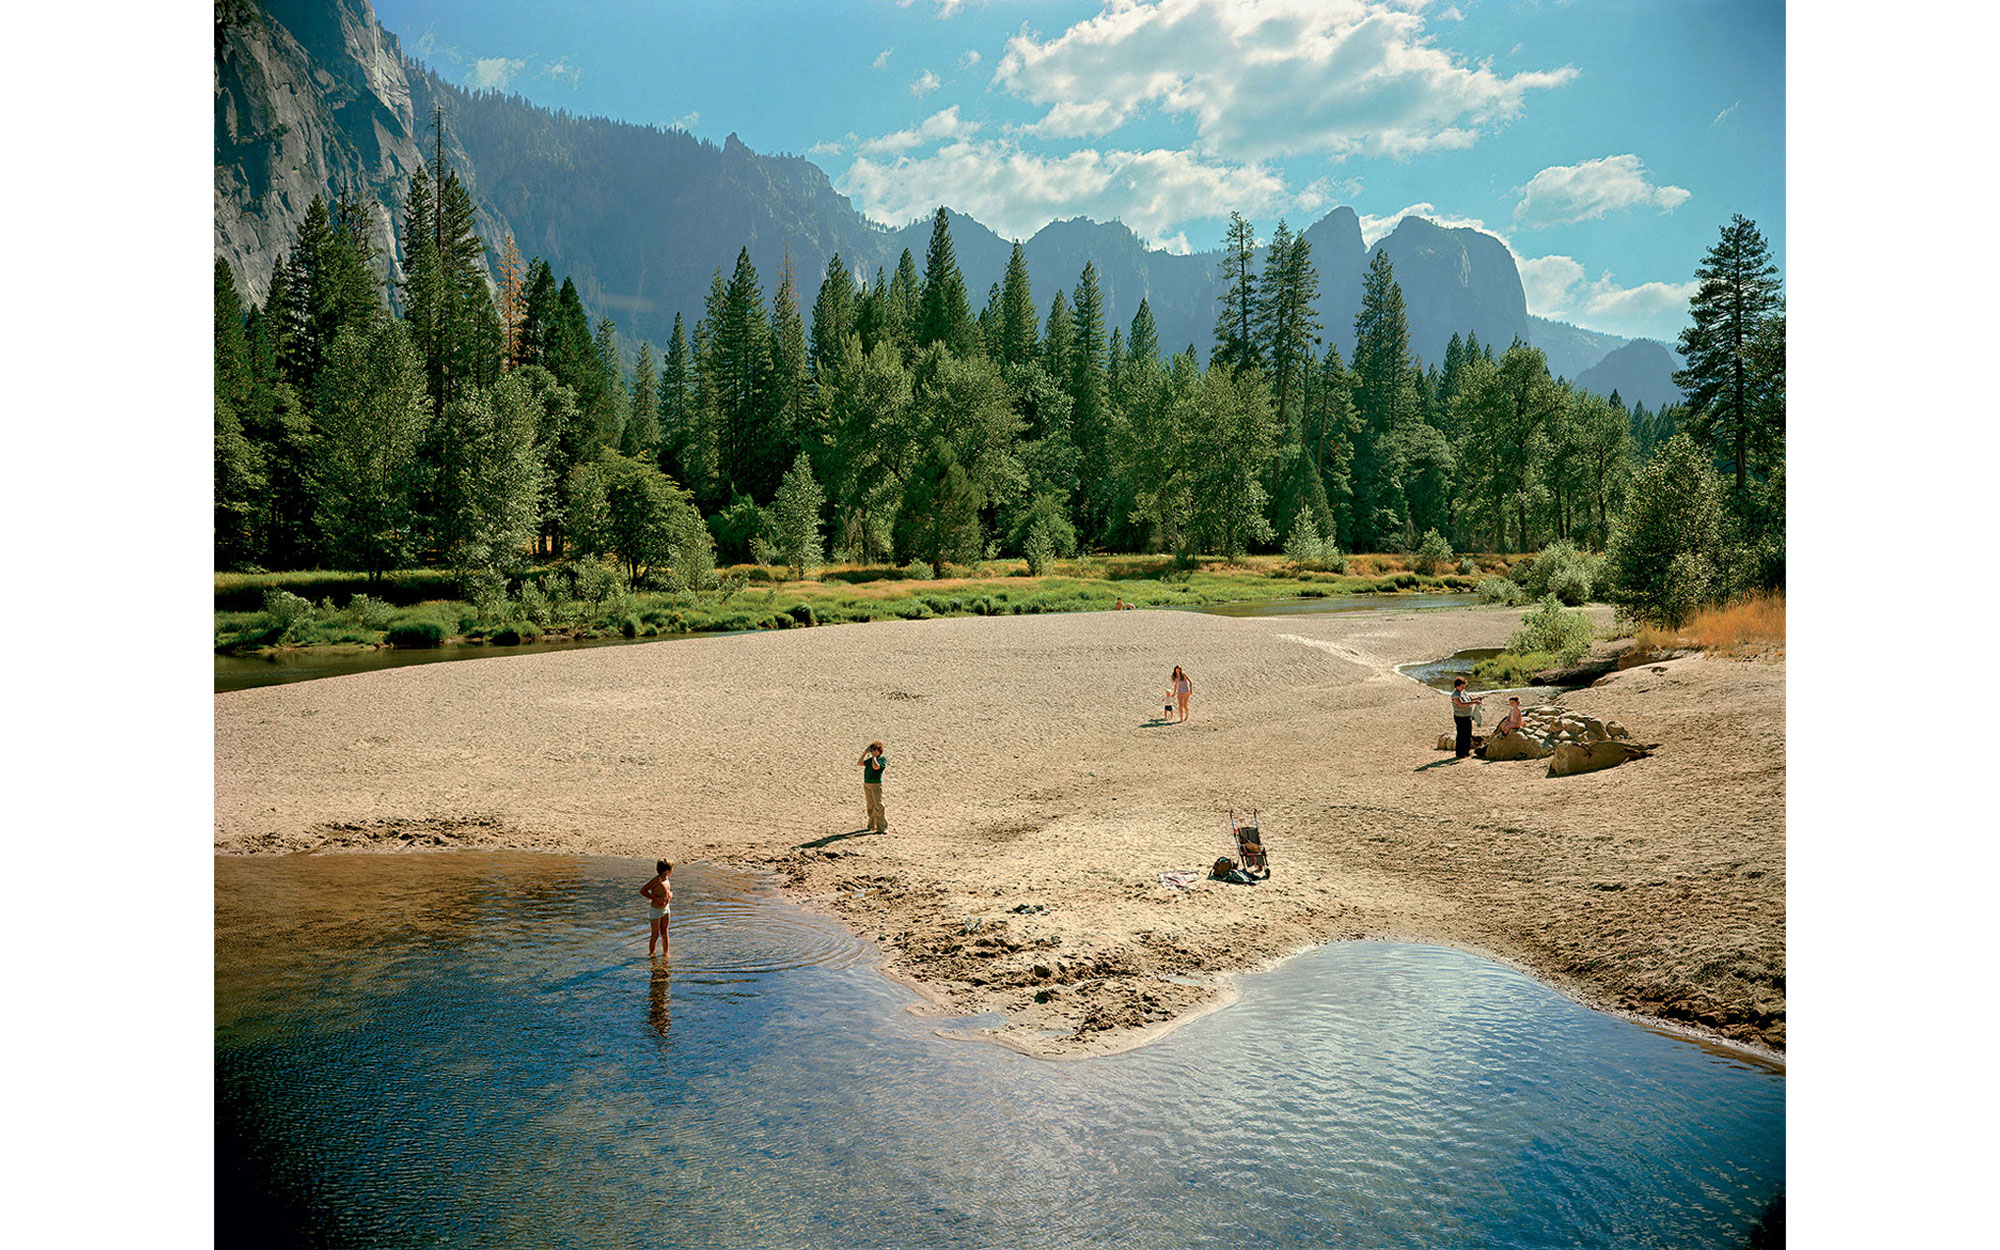 Stephen Shore, Merced River, Yosemite, National Park, California, August 13, 1979